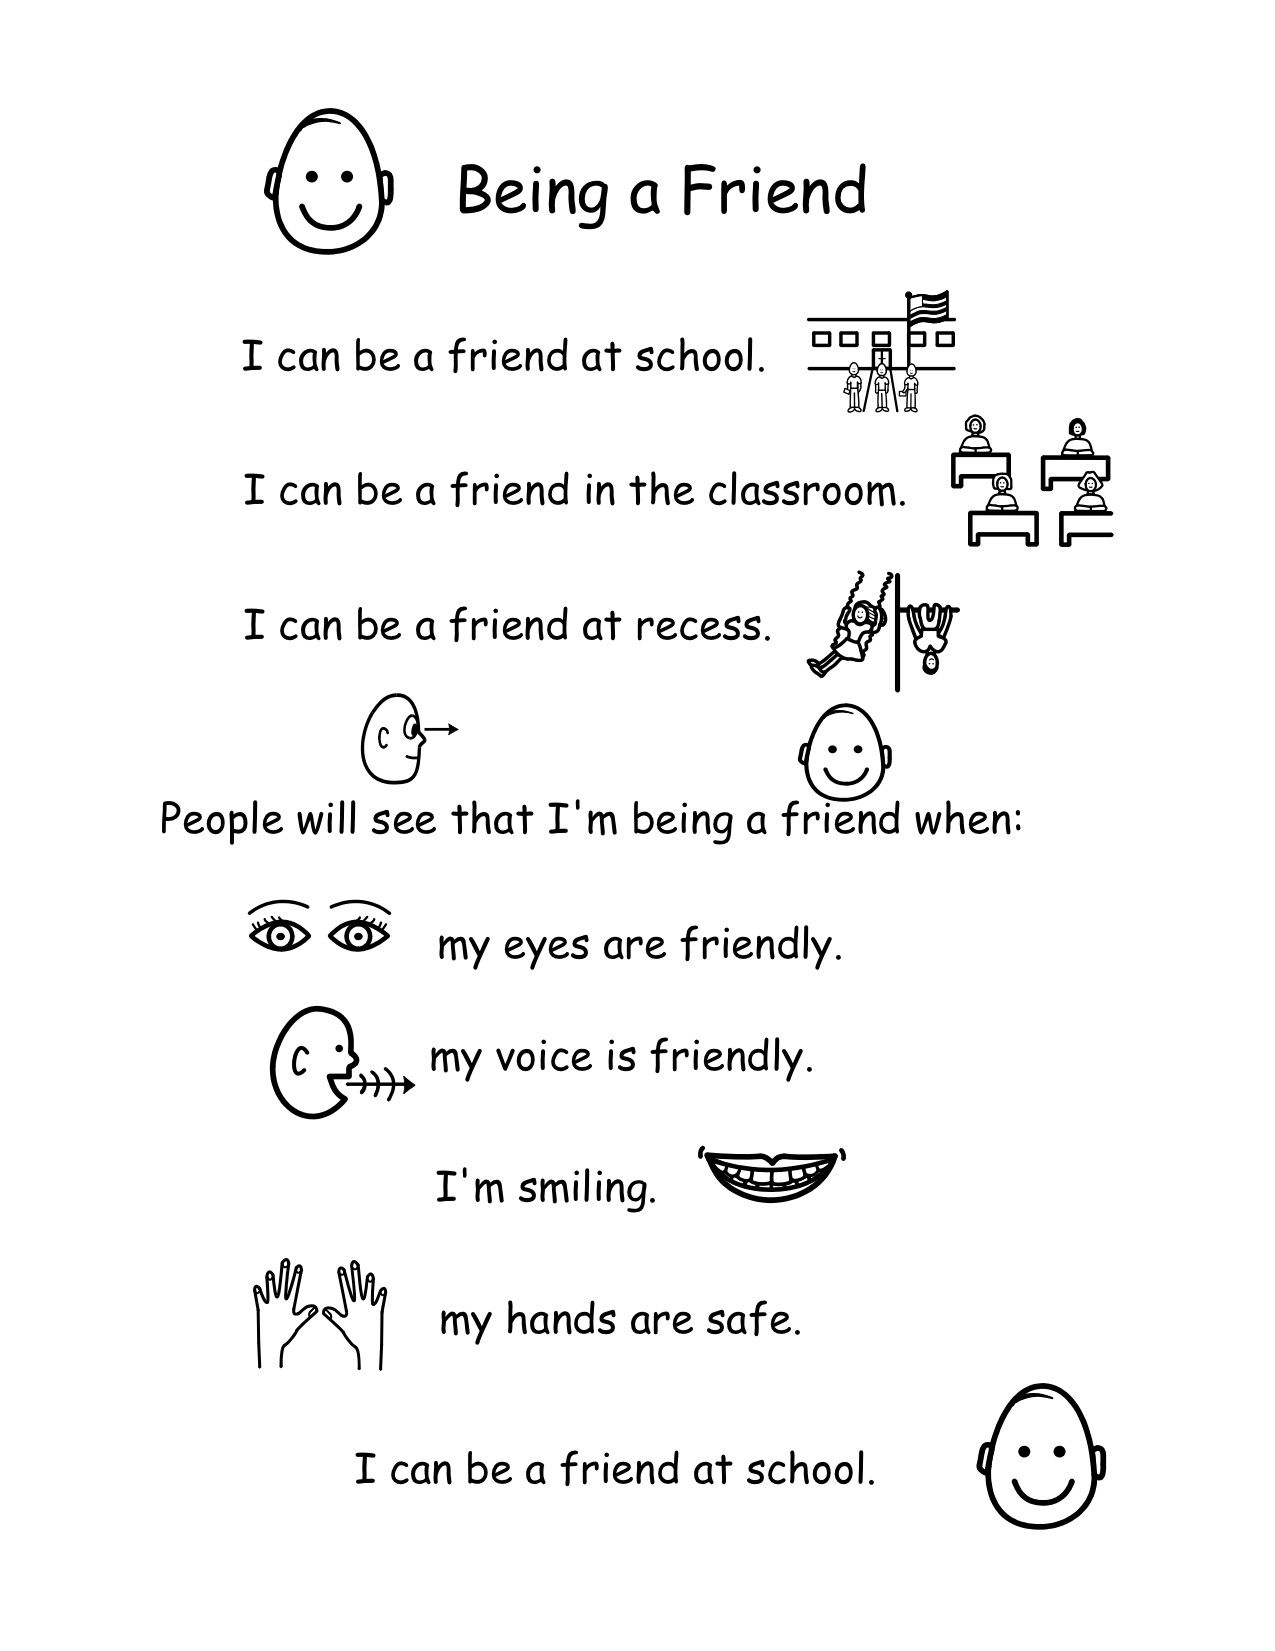 Behavior Support Story For How To Be A Friend Created On